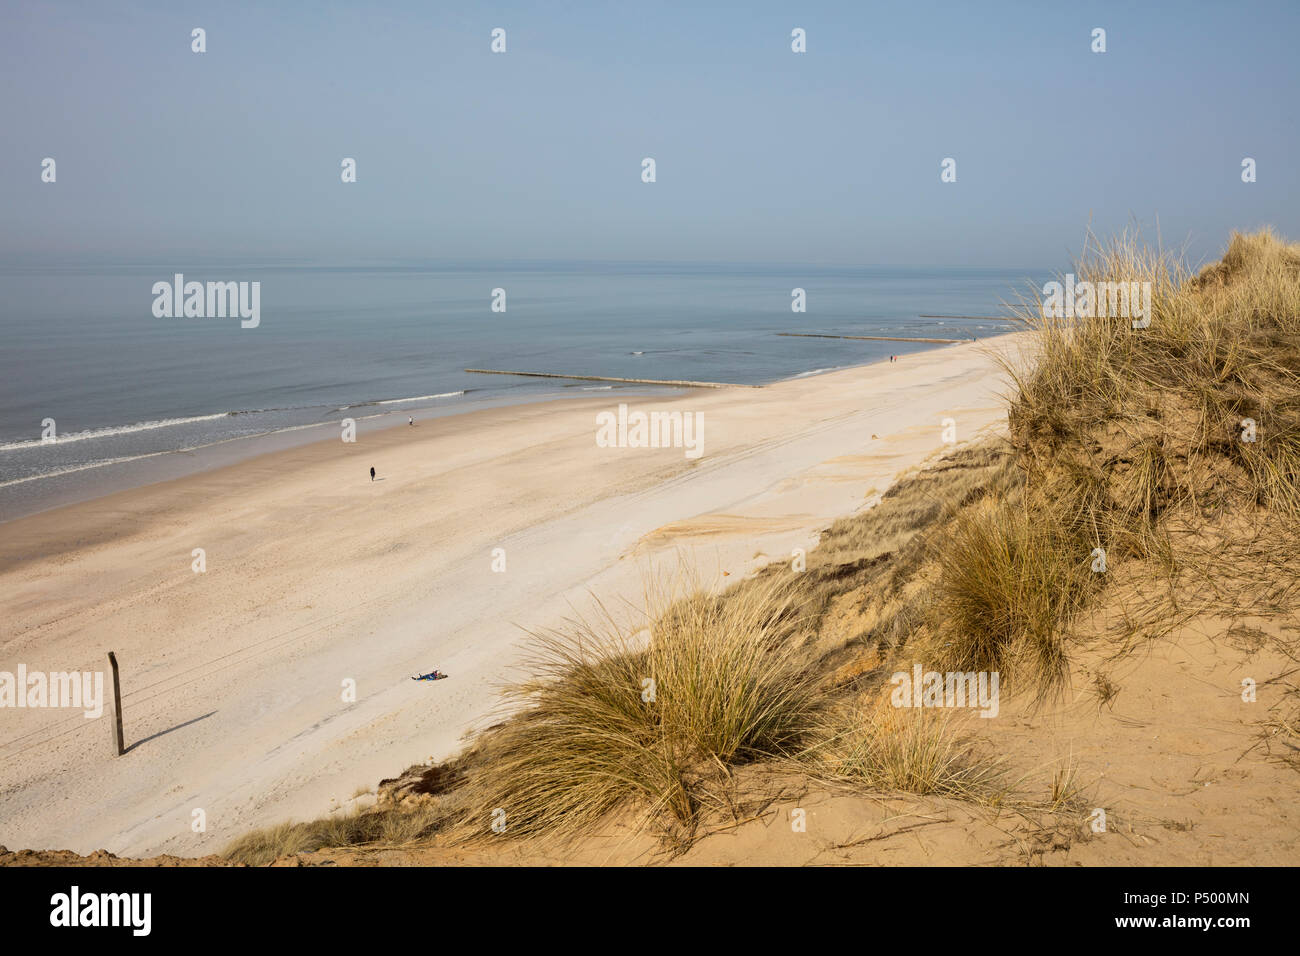 Germany, Schleswig-Holstein, North Frisian Islands, Sylt, view to beach at Rotes Kliff - Stock Image